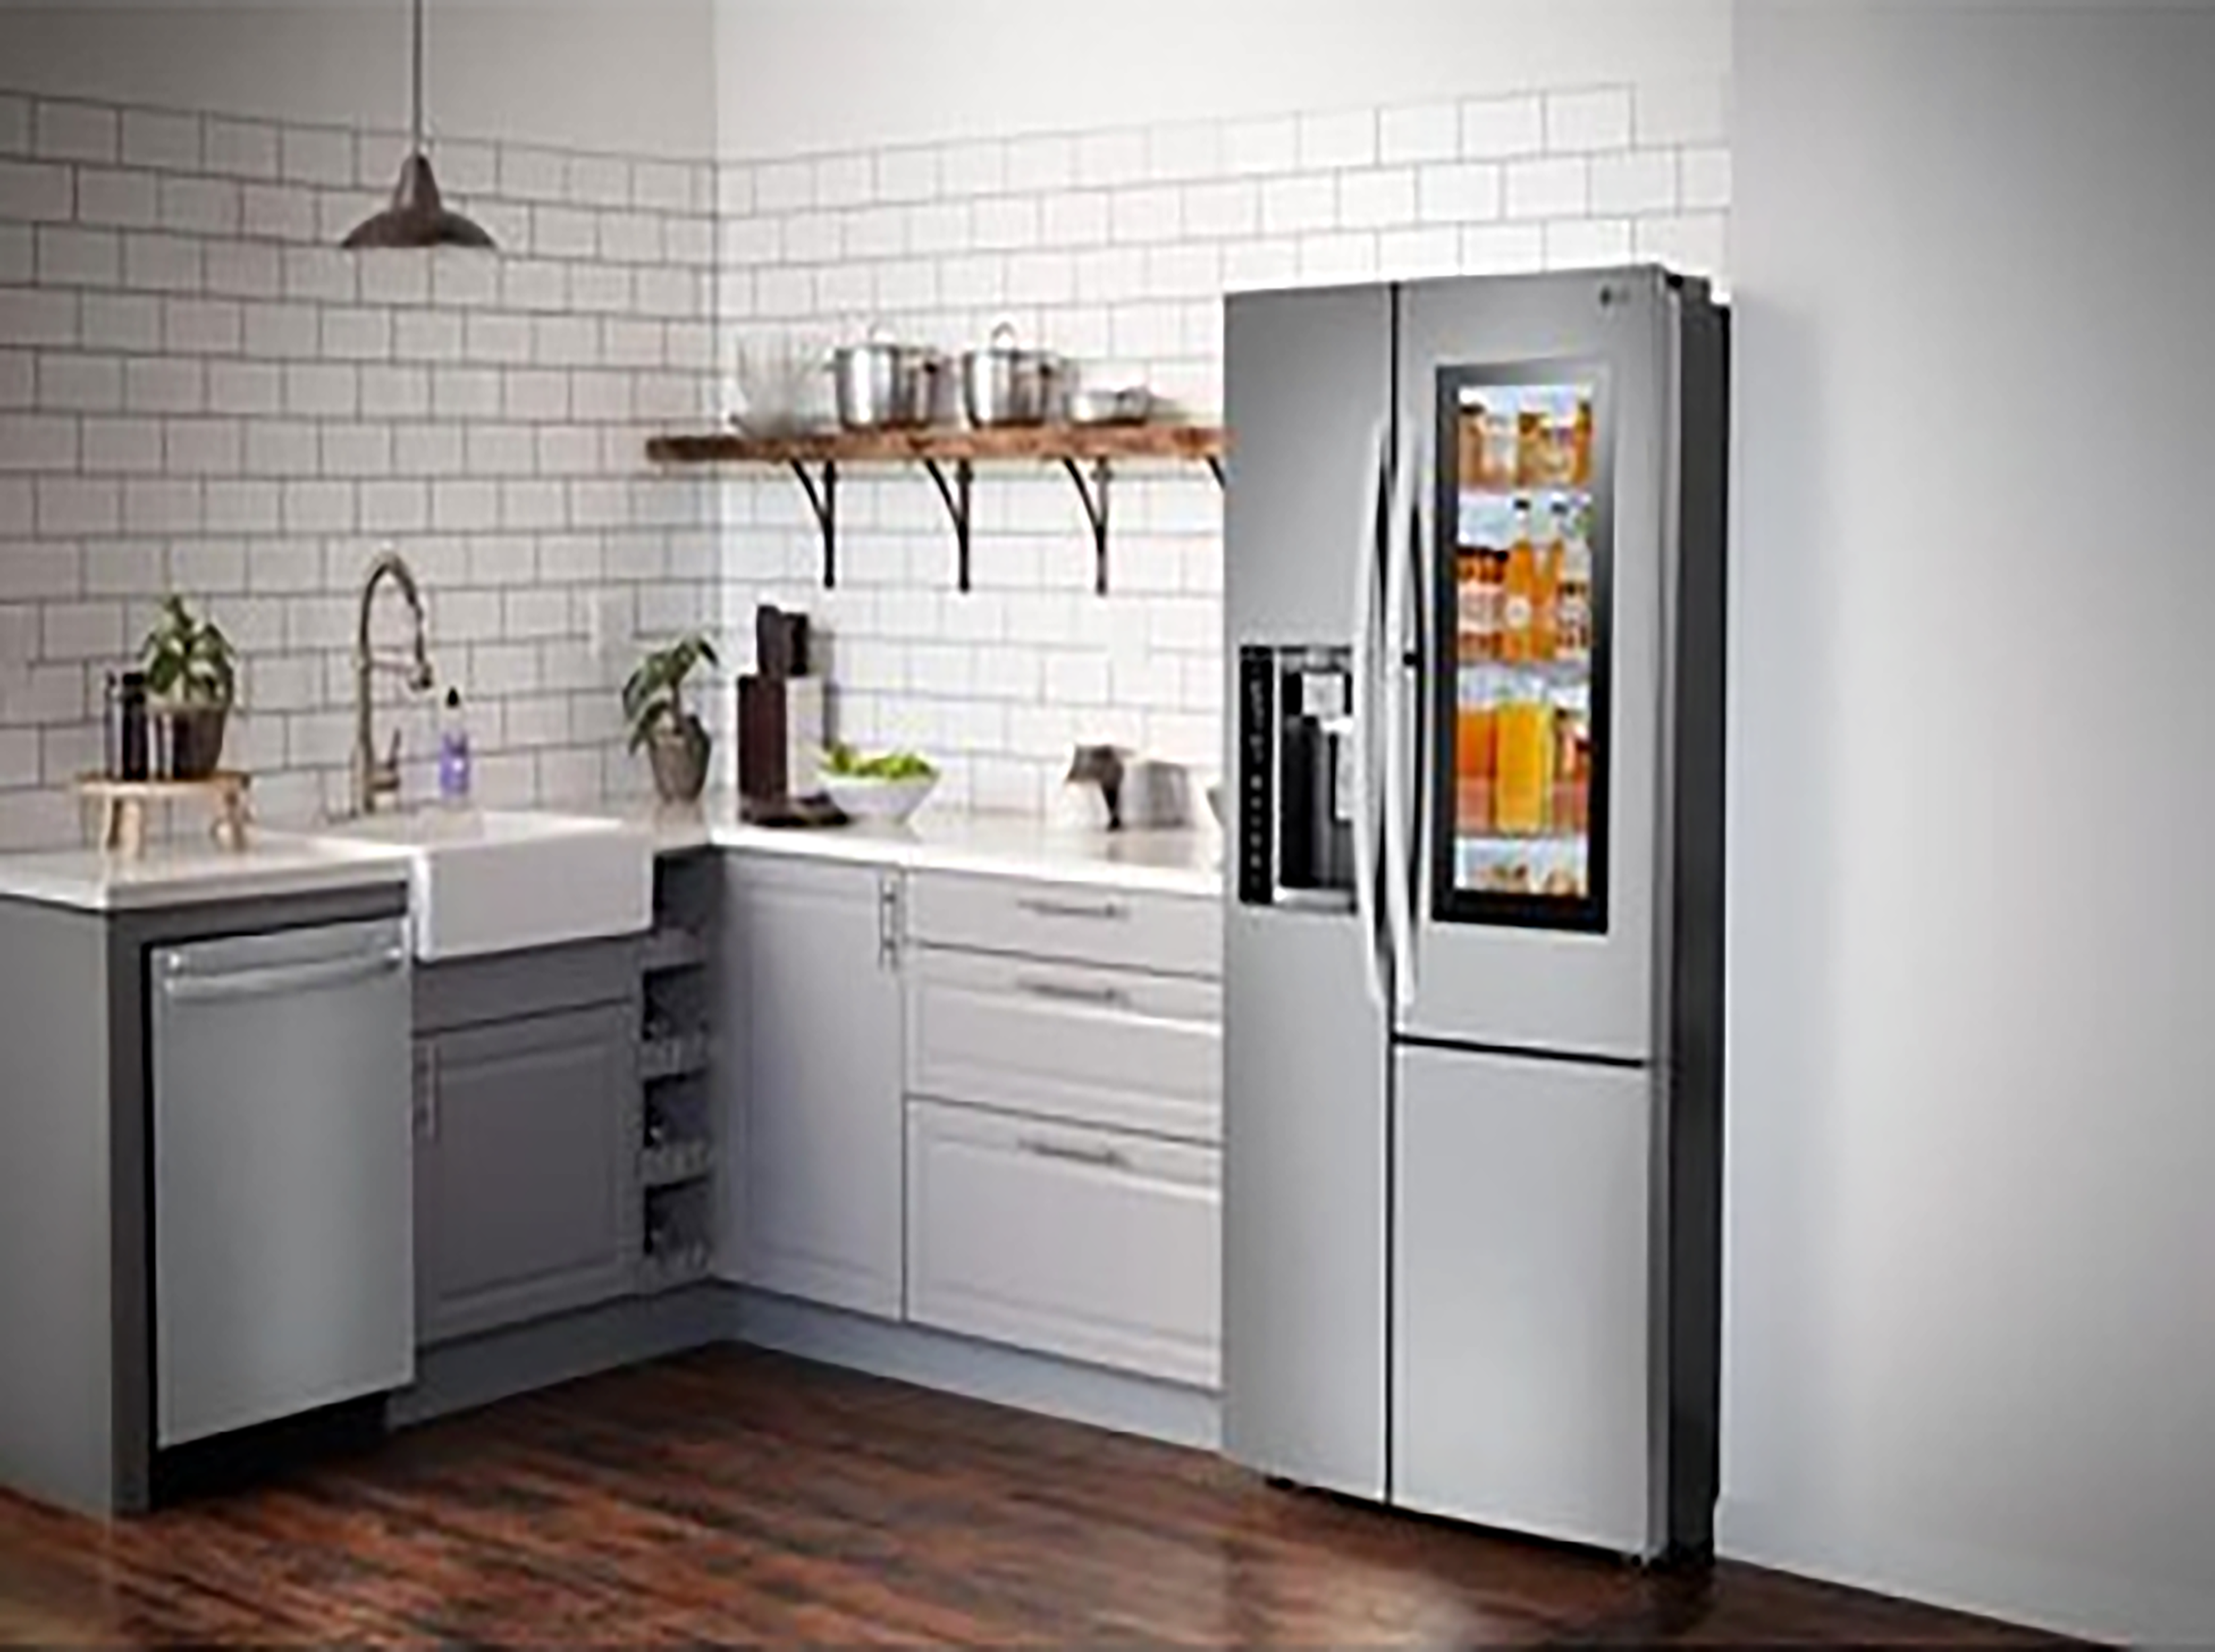 LG refrigerator for Kitchen Remodel